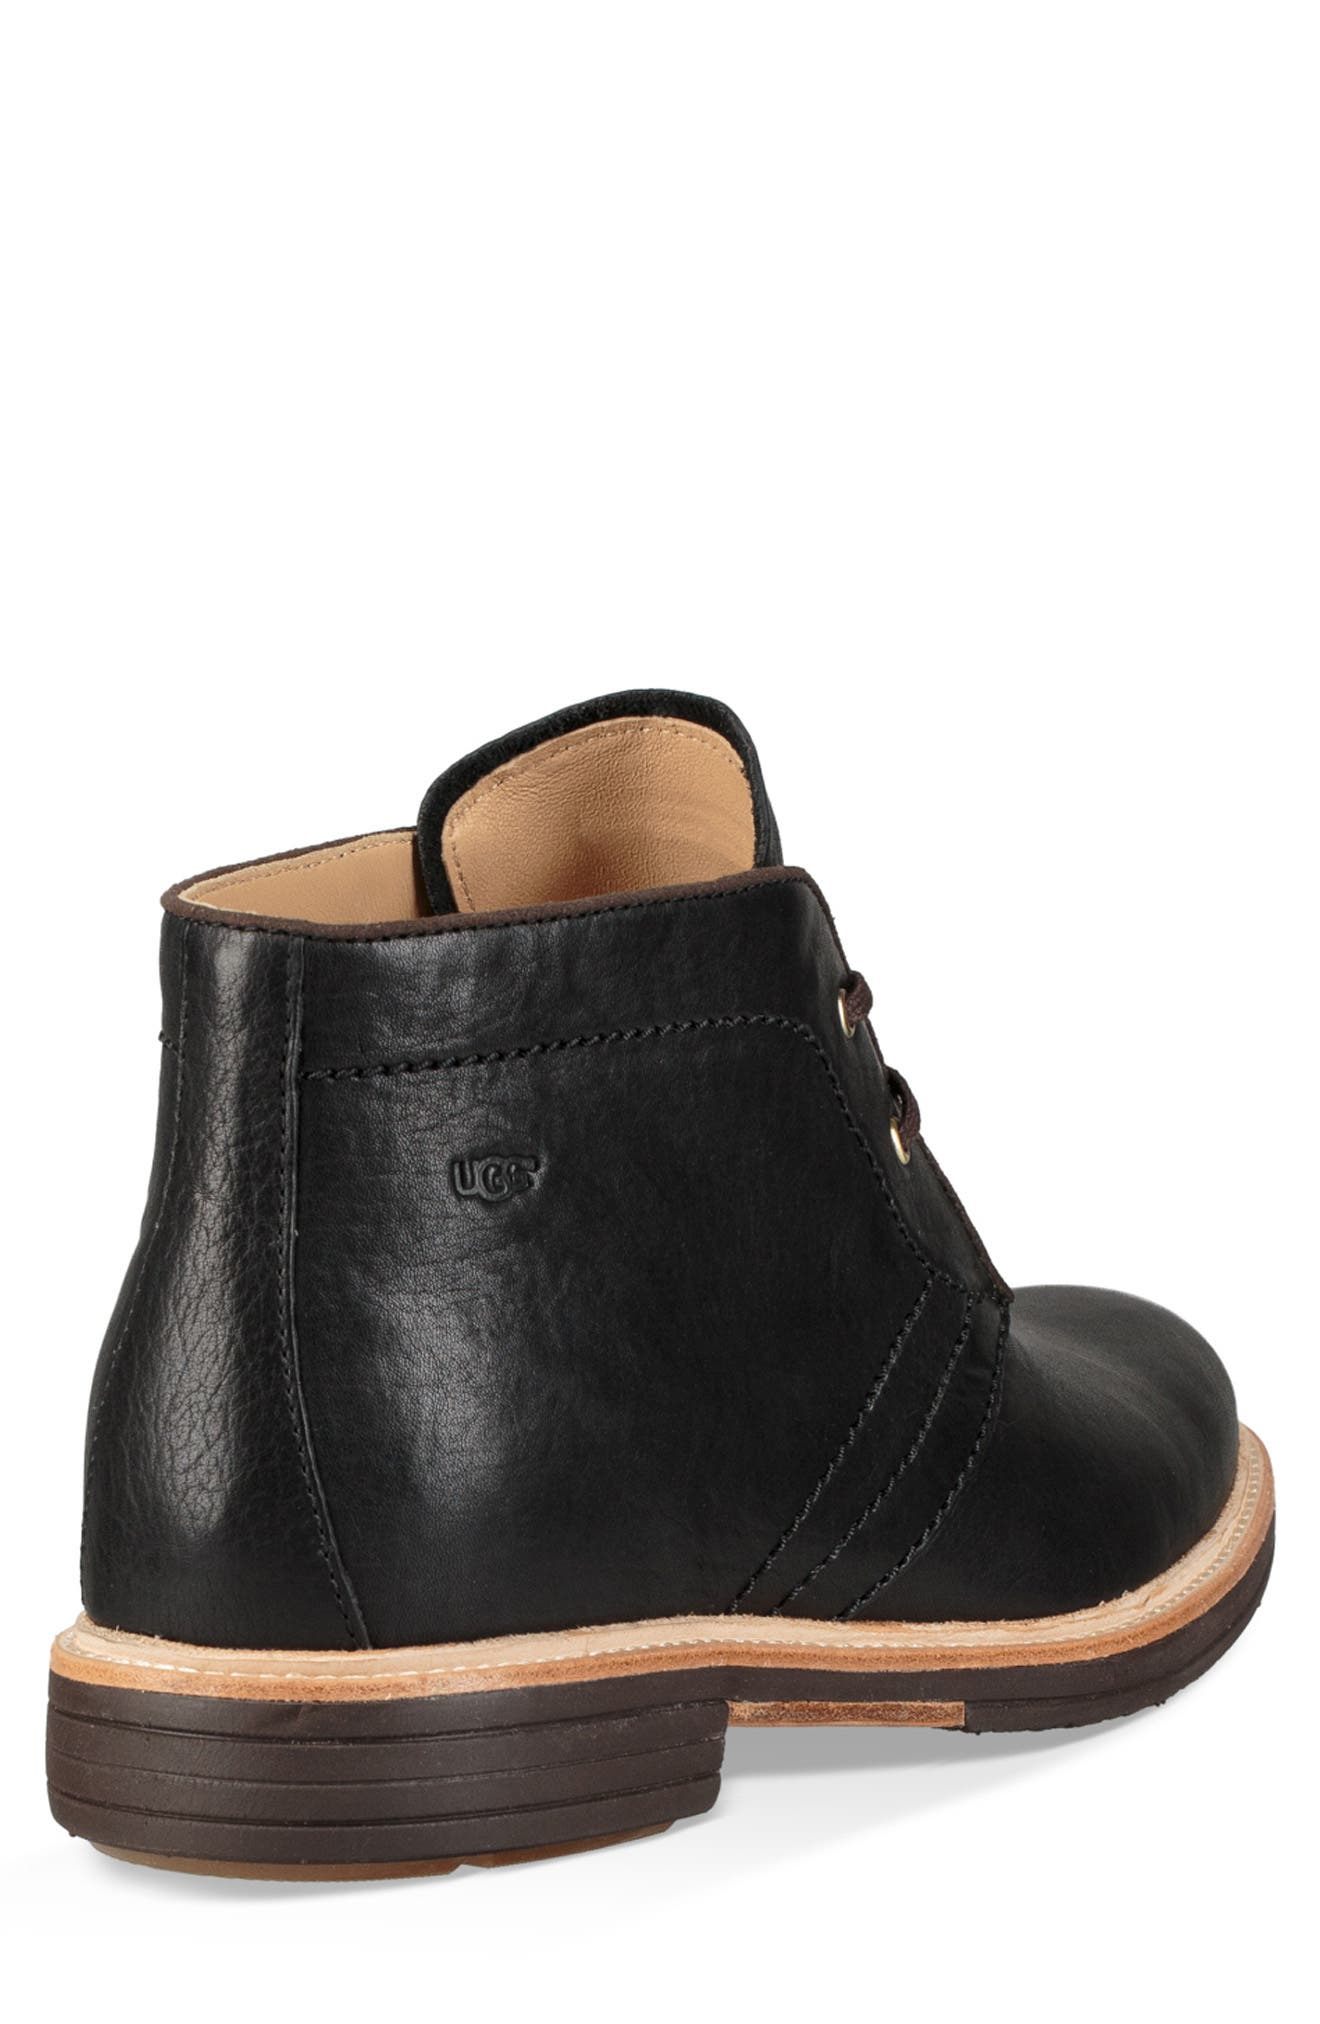 UGG<SUP>®</SUP>, Australia Dagmann Chukka Boot, Alternate thumbnail 2, color, BLACK LEATHER/SUEDE